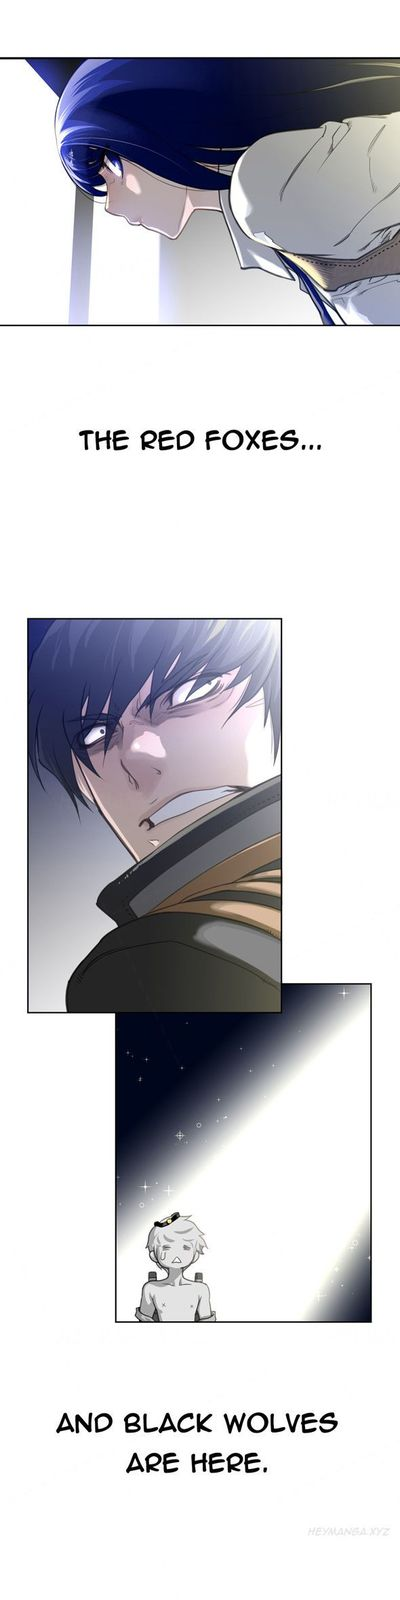 Perfect Half Ch.1-27  (Ongoing) - part 10